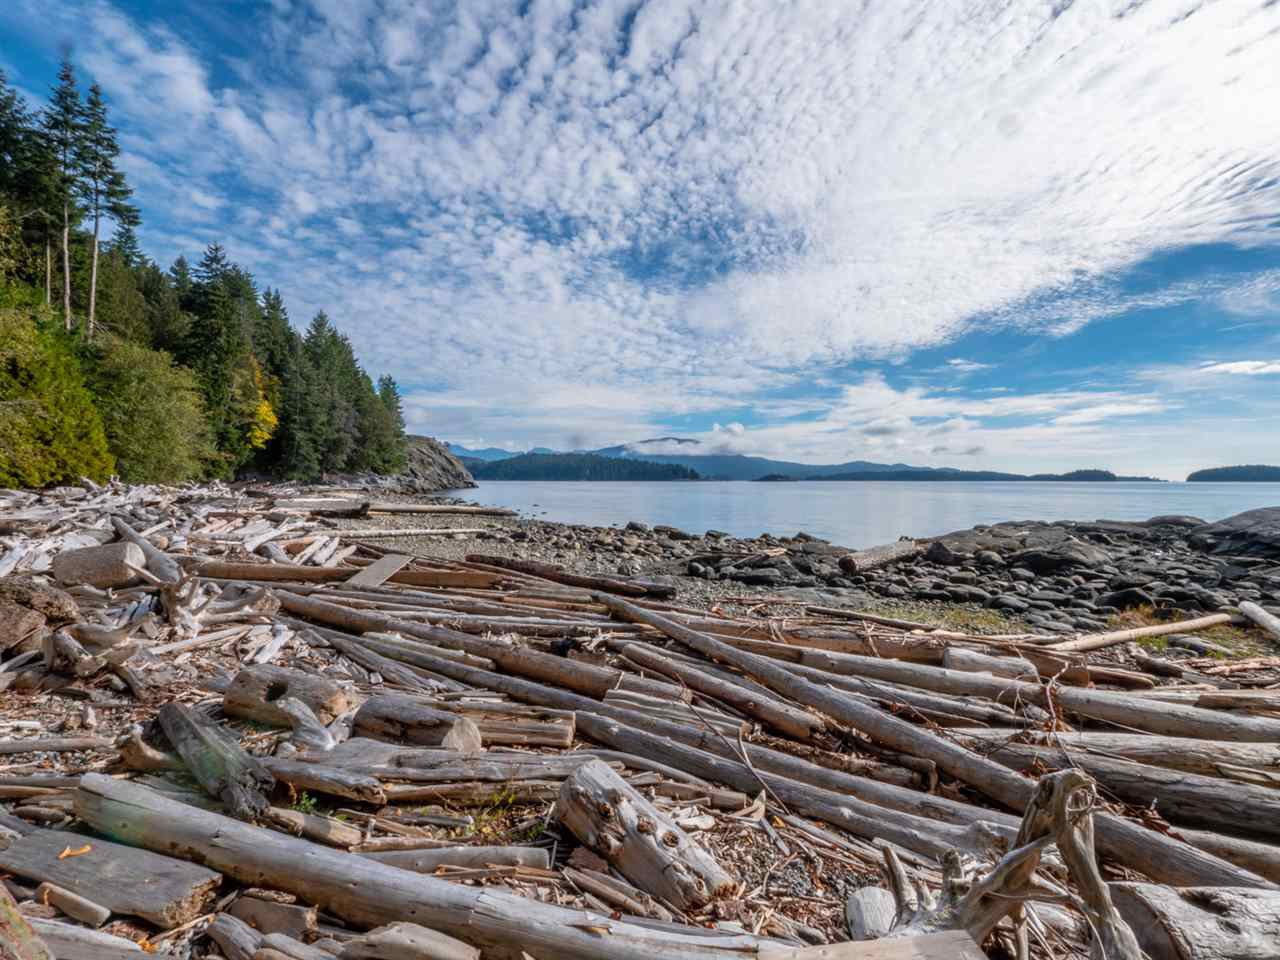 Photo 20: Photos: 877 GOWER POINT Road in Gibsons: Gibsons & Area House for sale (Sunshine Coast)  : MLS®# R2419918